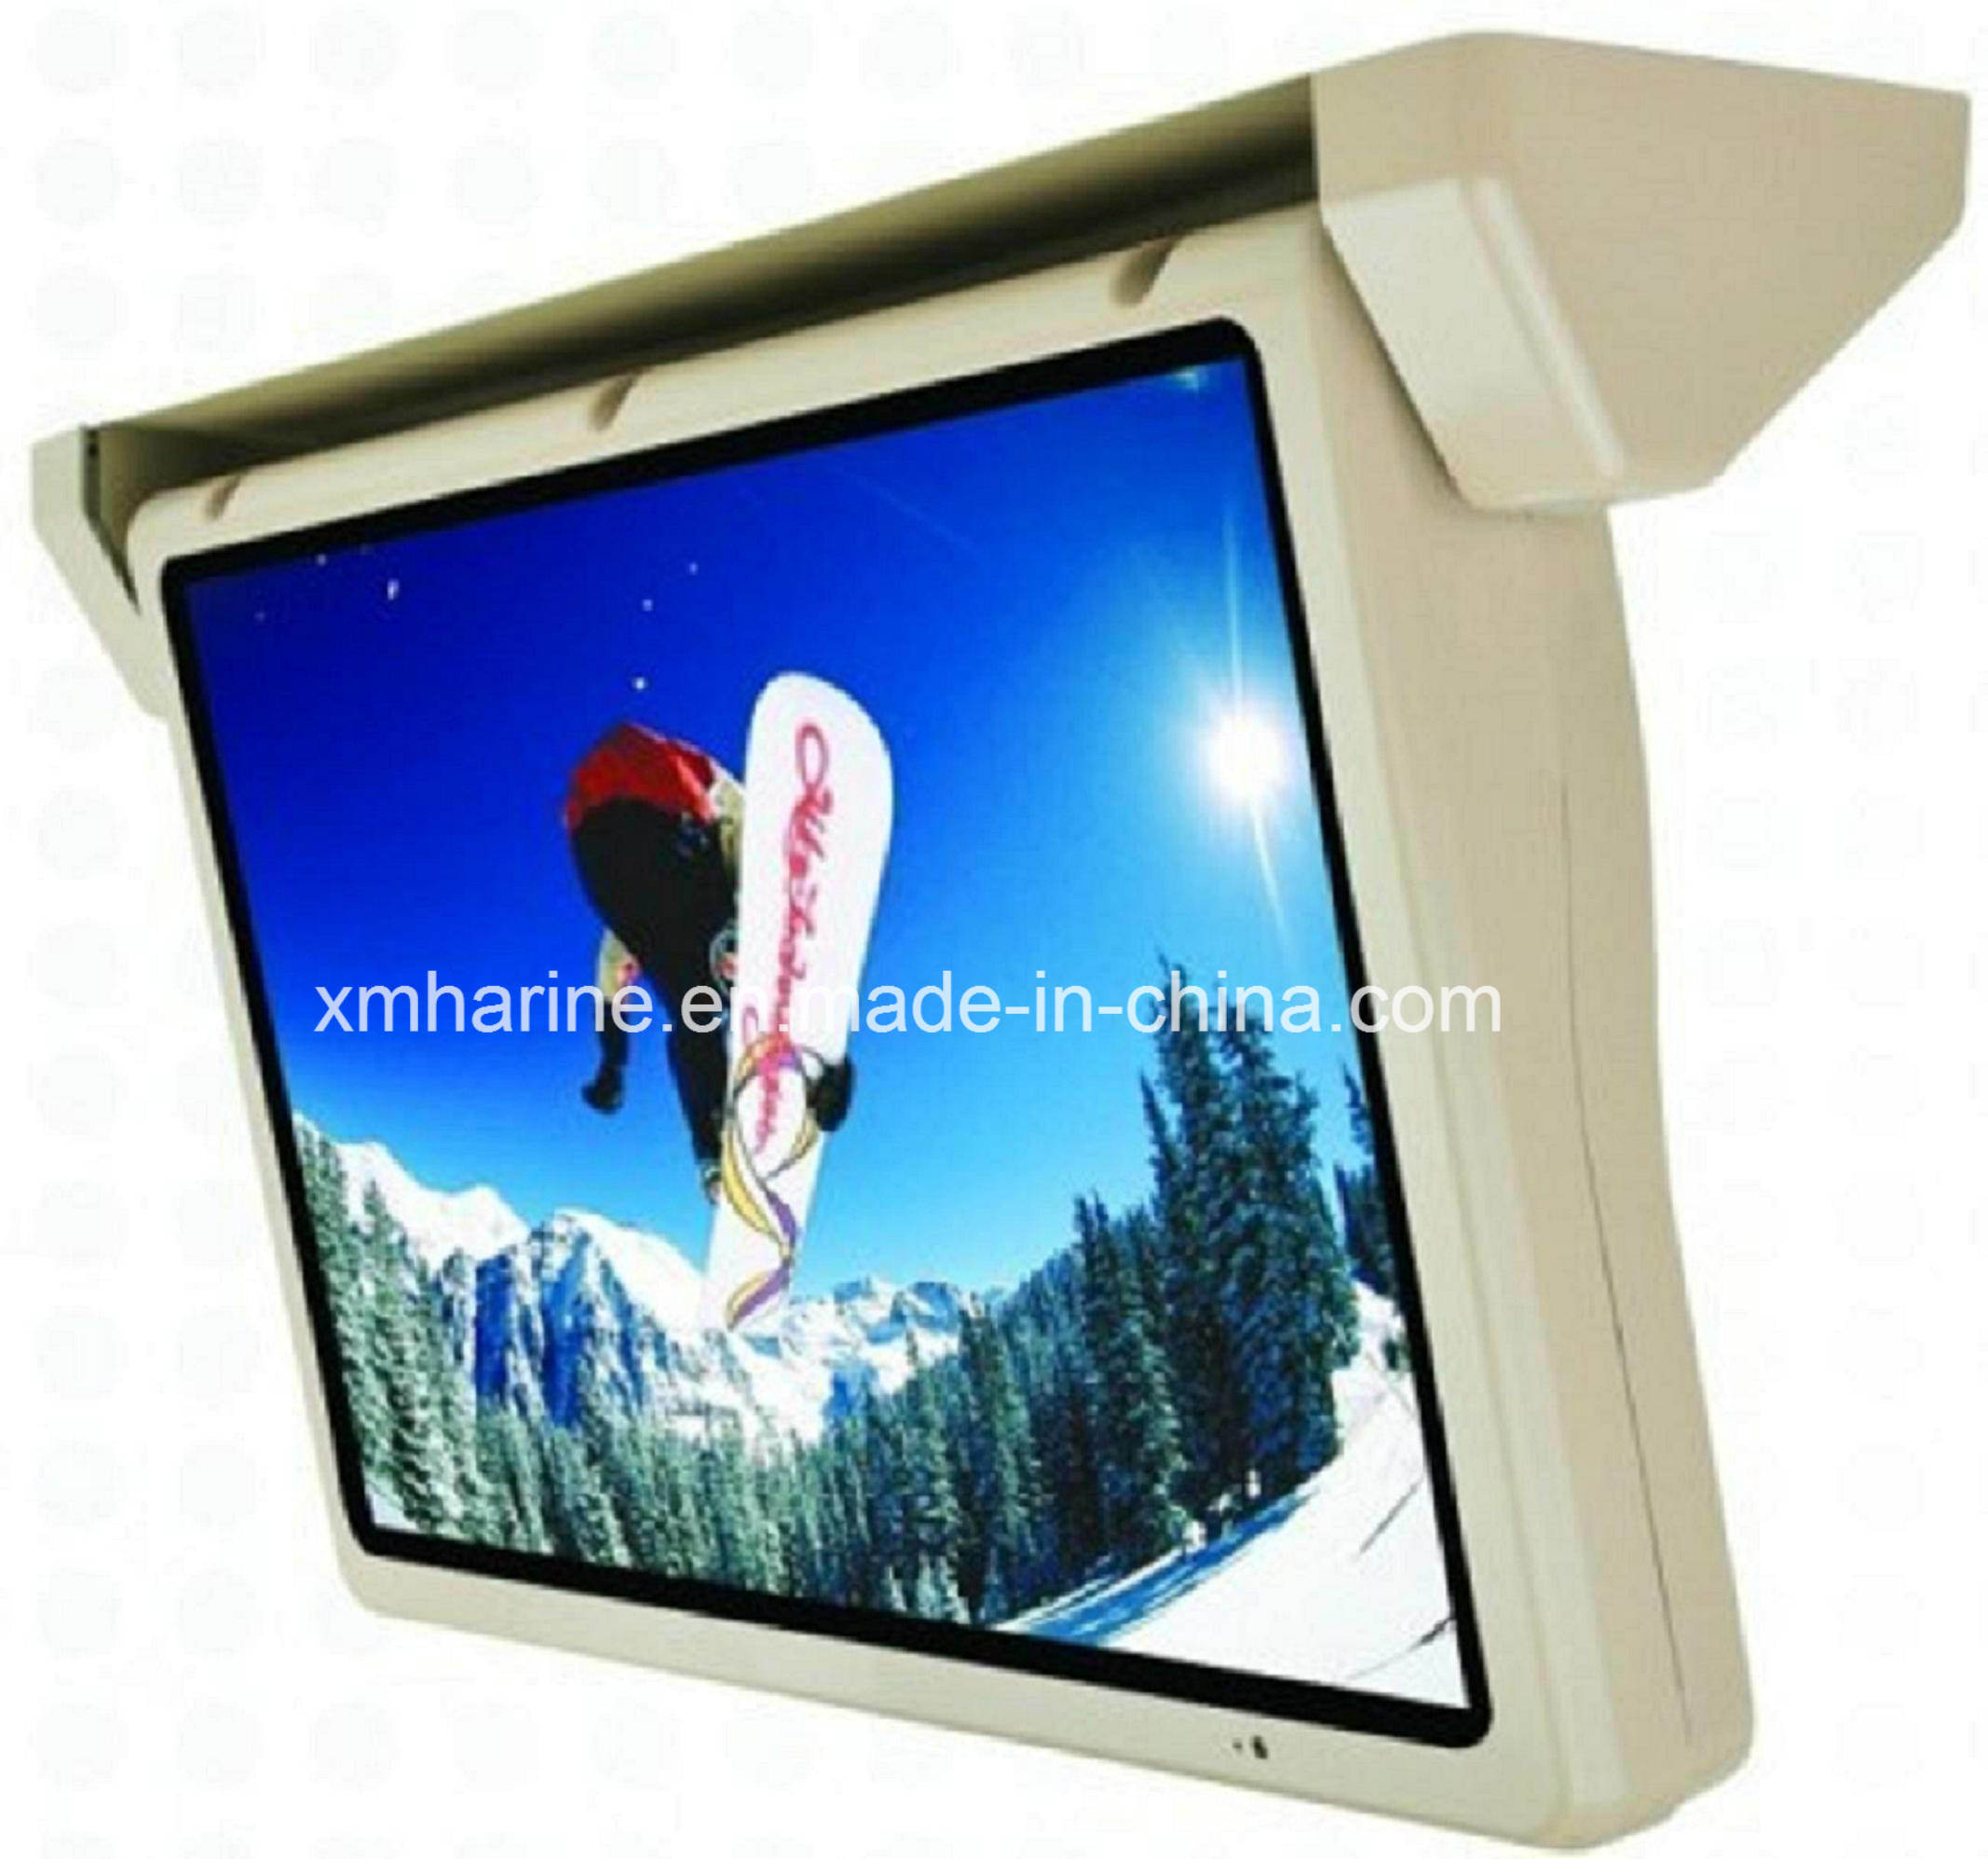 18.5 Inches TFT LCD Color TV Display Bus/Car Monitor